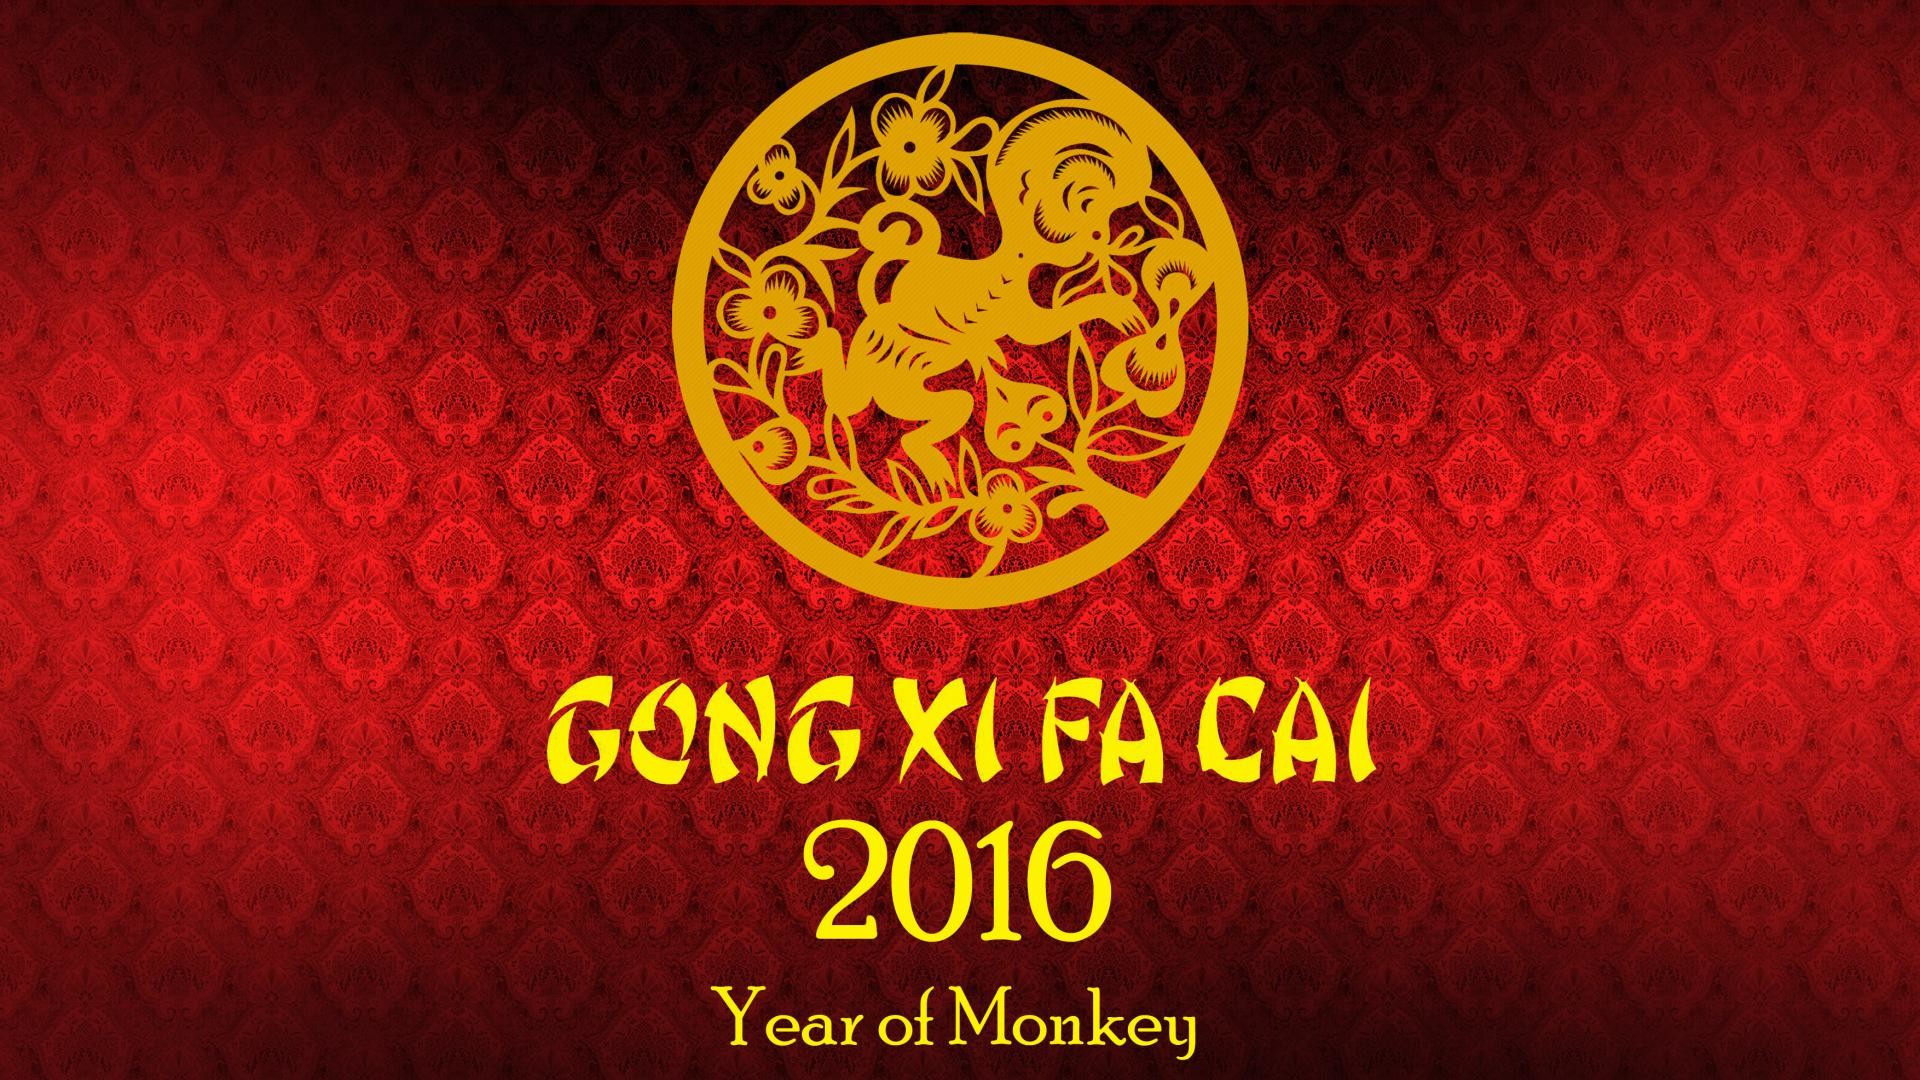 1920x1080 Chinese New Year 2016 Wallpaper - Year of Monkey | HD Wallpapers for .